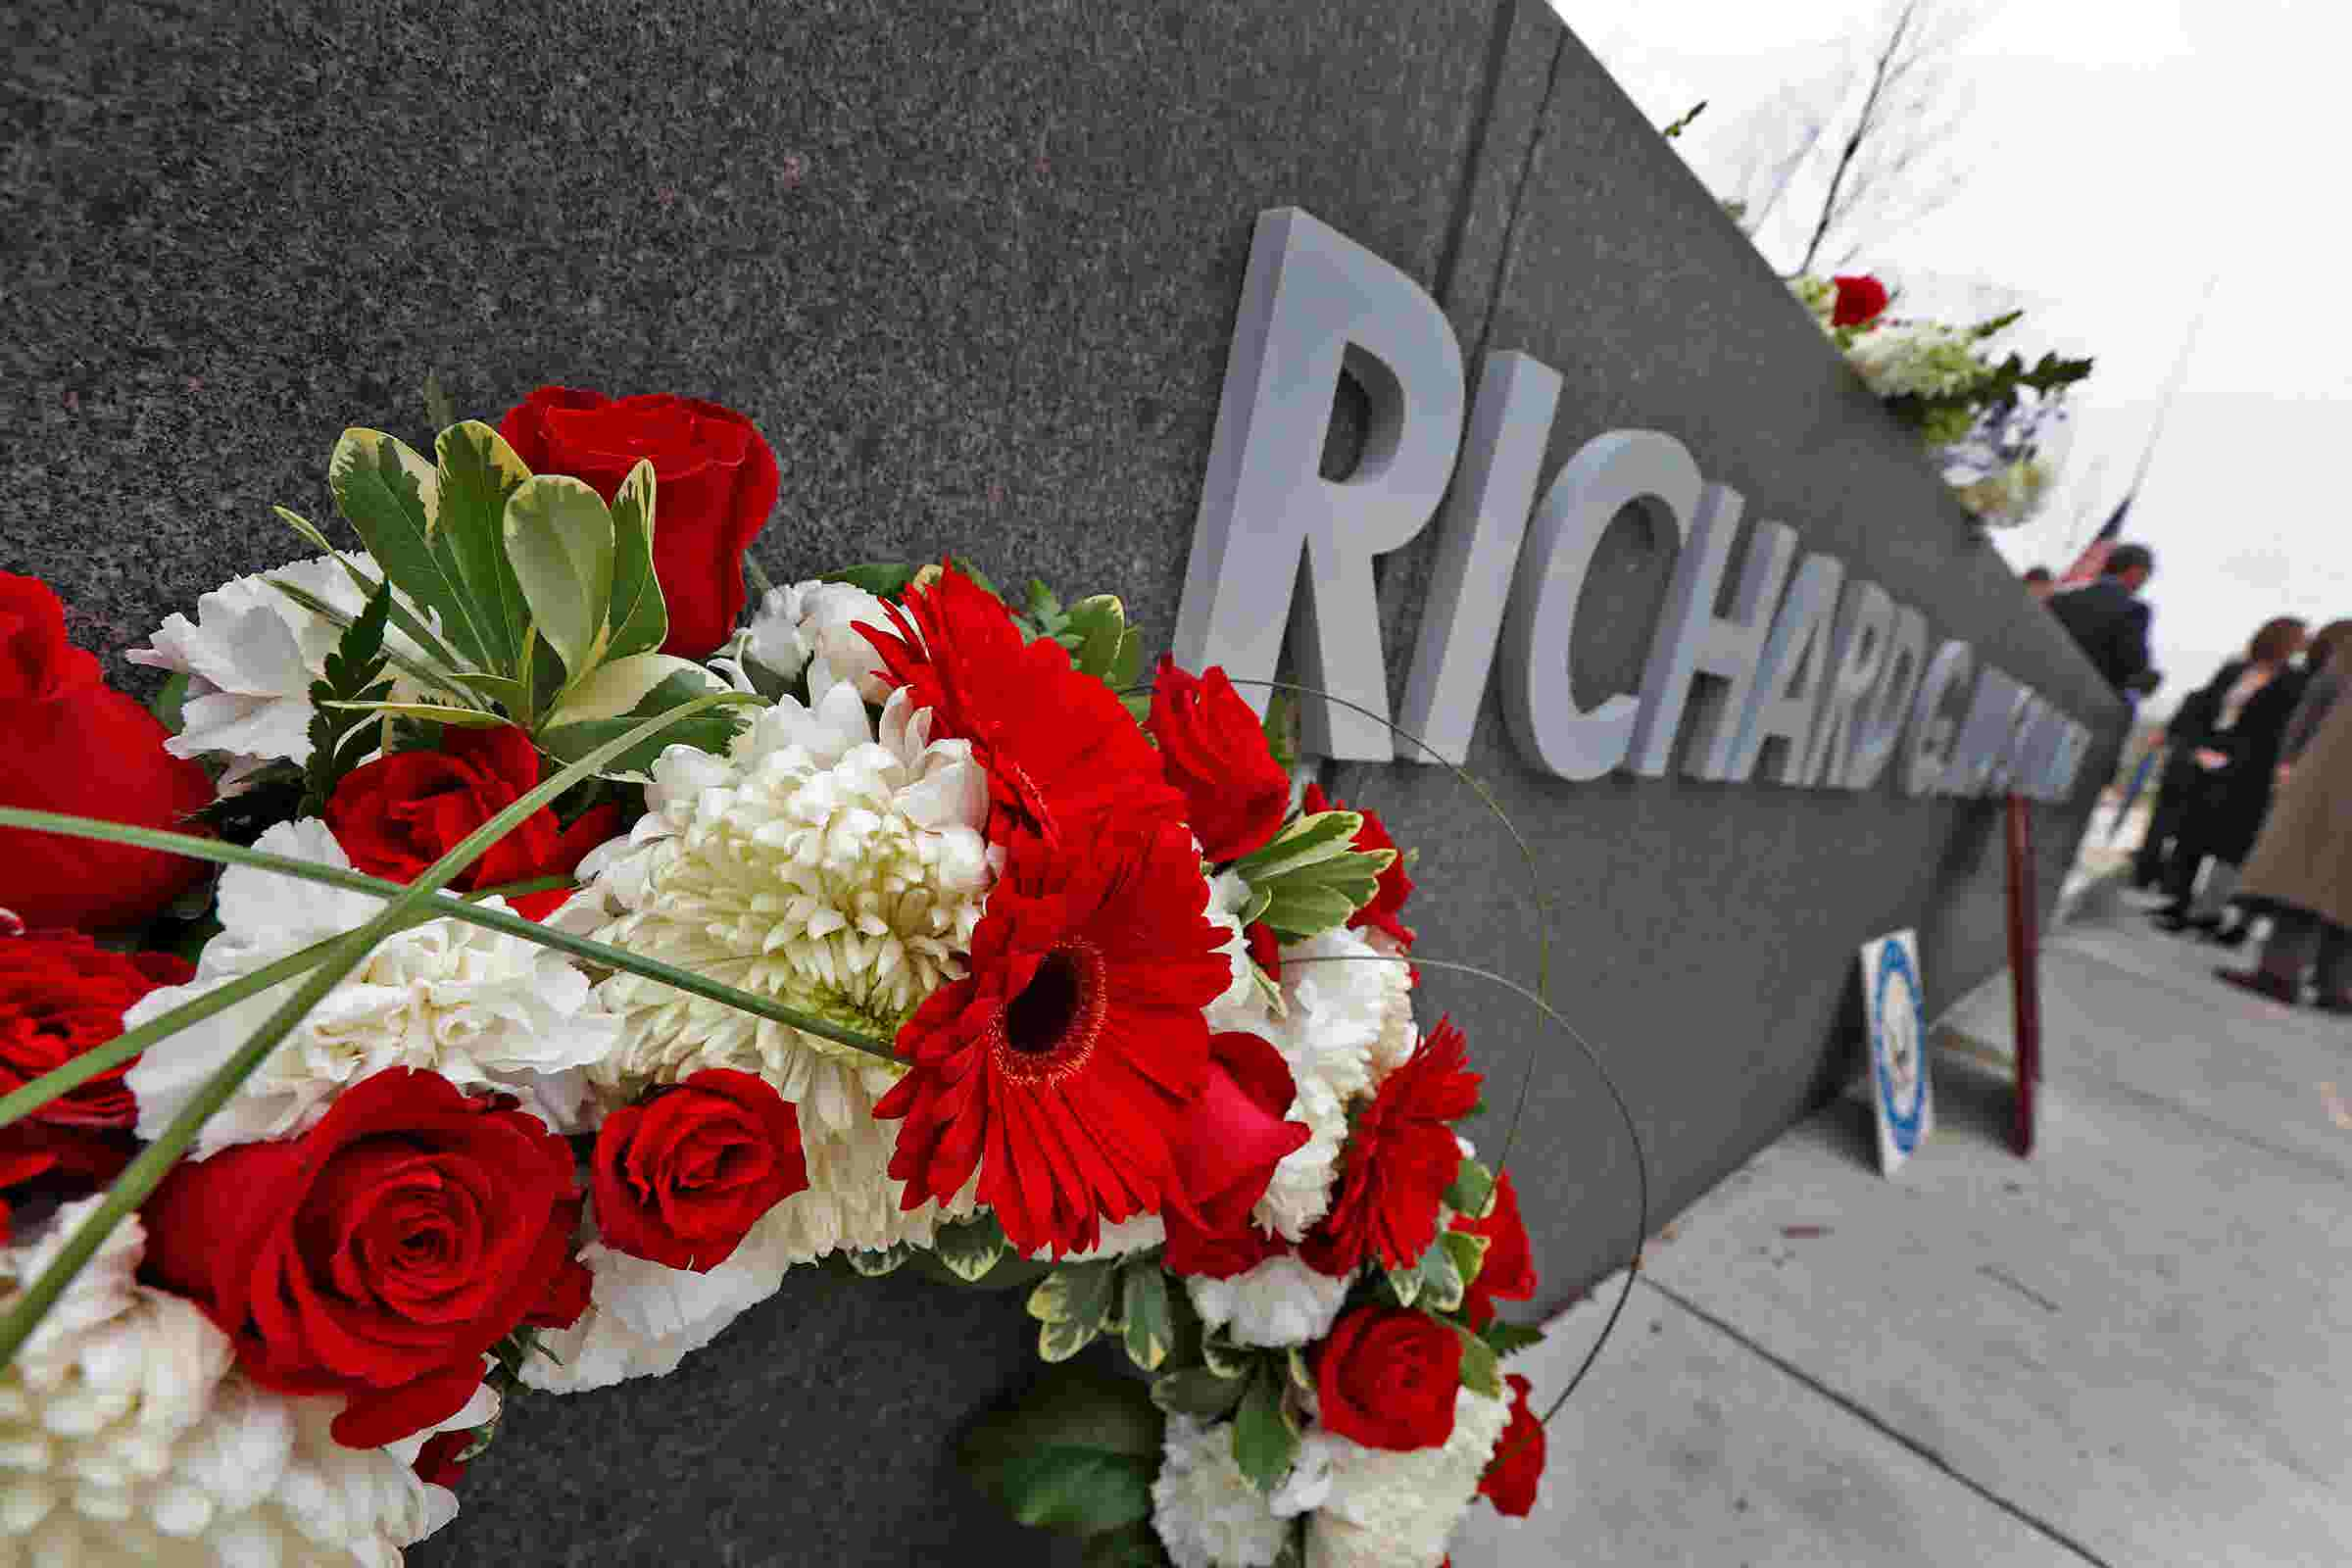 How to watch a livestream of Richard Lugar's funeral